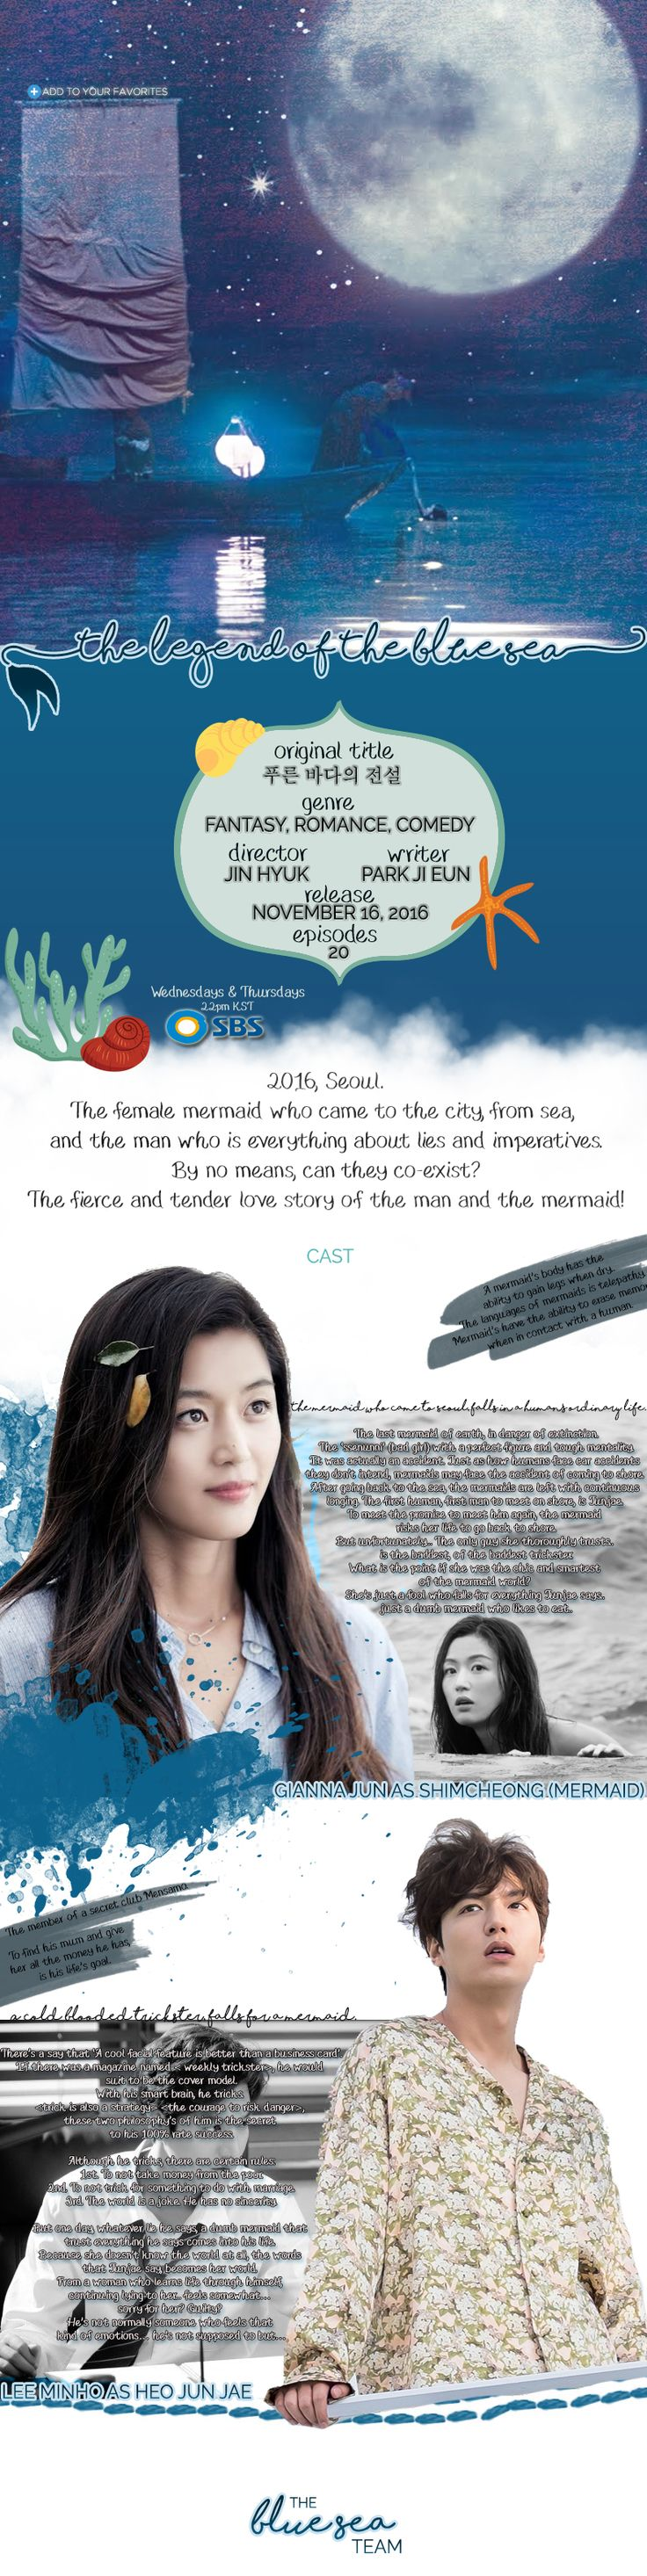 """How can a mermaid from the Joseon era survive in modern-day Seoul? Shim Chung (Jun Ji Hyun) is a mermaid who finds herself transplanted to modern times. She is """"caught"""" by Heo Joon Jae (Lee Min Ho), a charming but cold con artist who is the doppelgänger for Kim Moon, the son of a nobleman she met during the Joseon Dynasty. But in the present time, Joon Jae works with Jo Nam Doo (Lee Hee Joon) and Tae Oh (Shin Won Ho) as part of a group of highly skilled scam artists. But Joon Jae's friend…"""